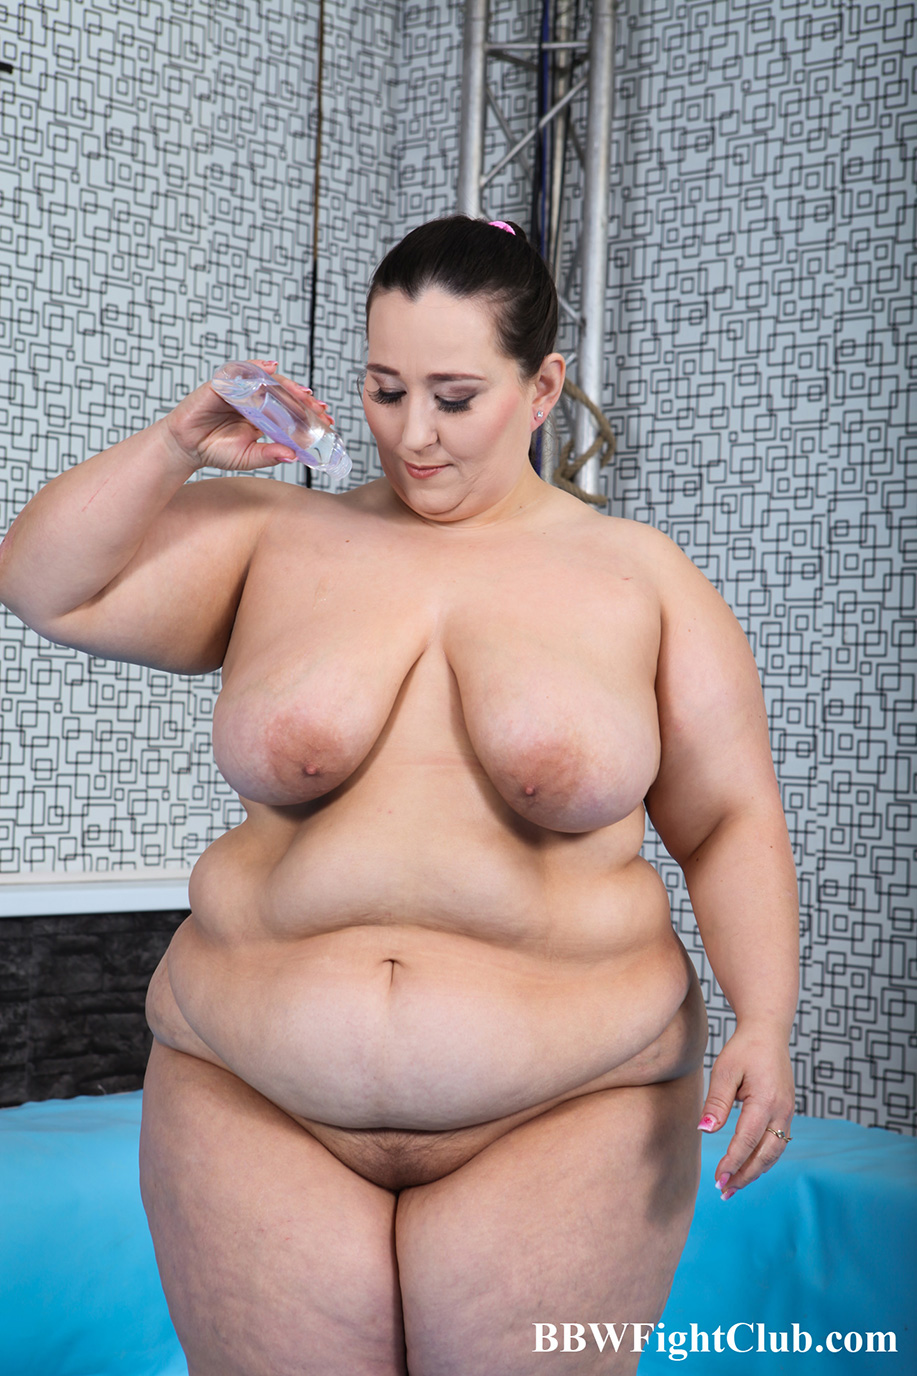 showing porn images for coch werstling bbw porn | www.xxxyour